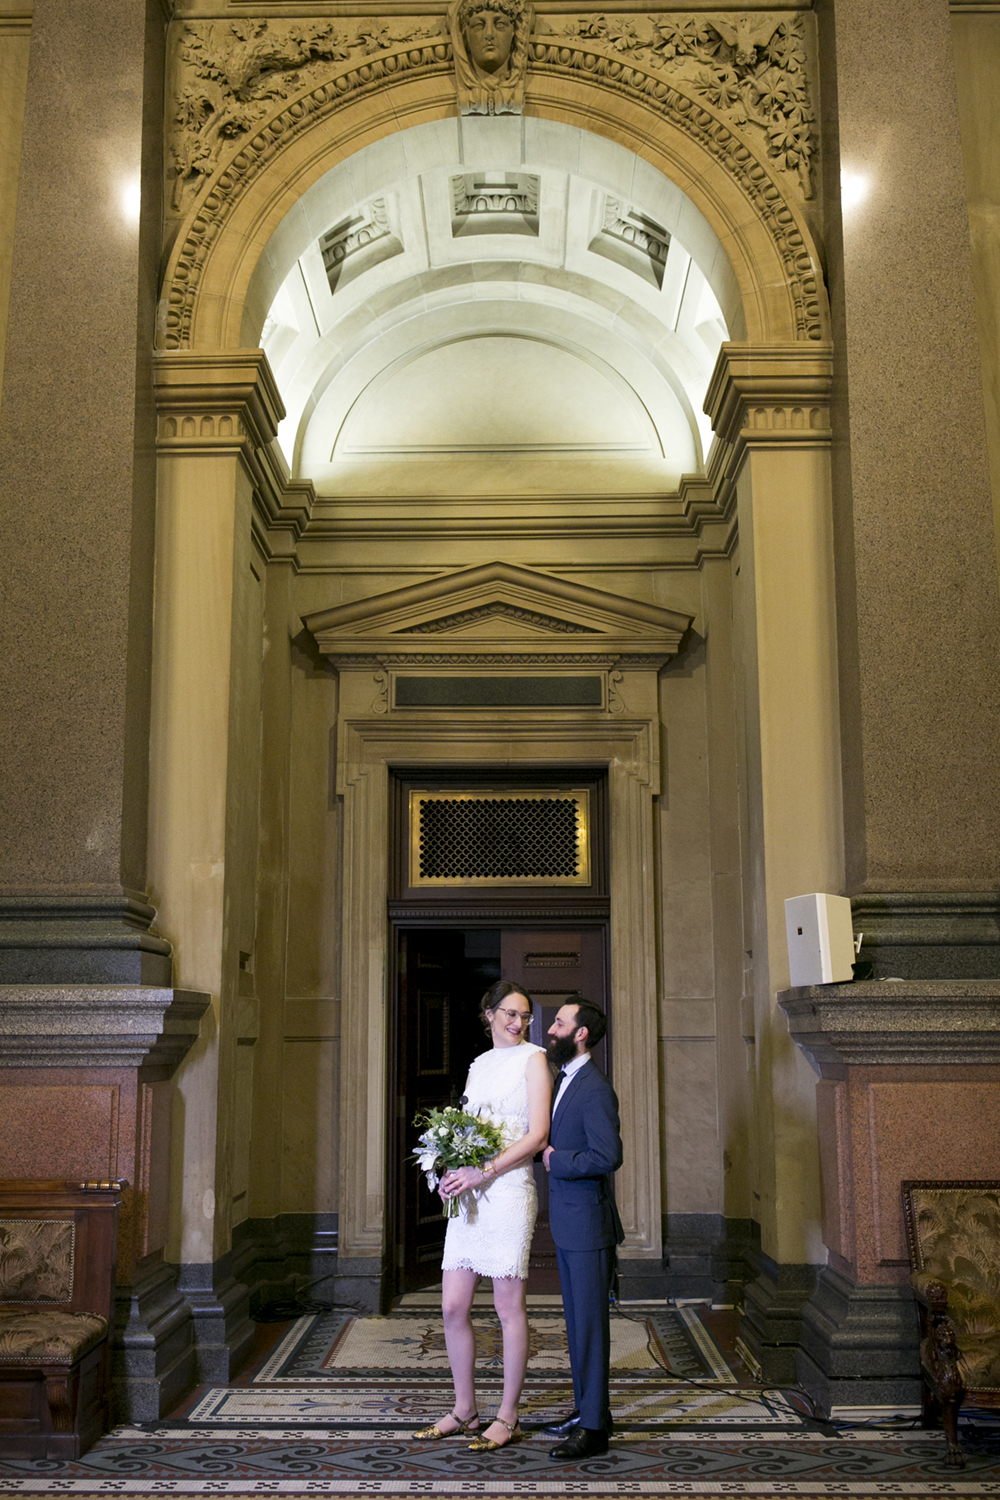 Heidi_Roland_Photography_Philadelphia_City_Hall_Wedding_Chloe_Max_060.jpg